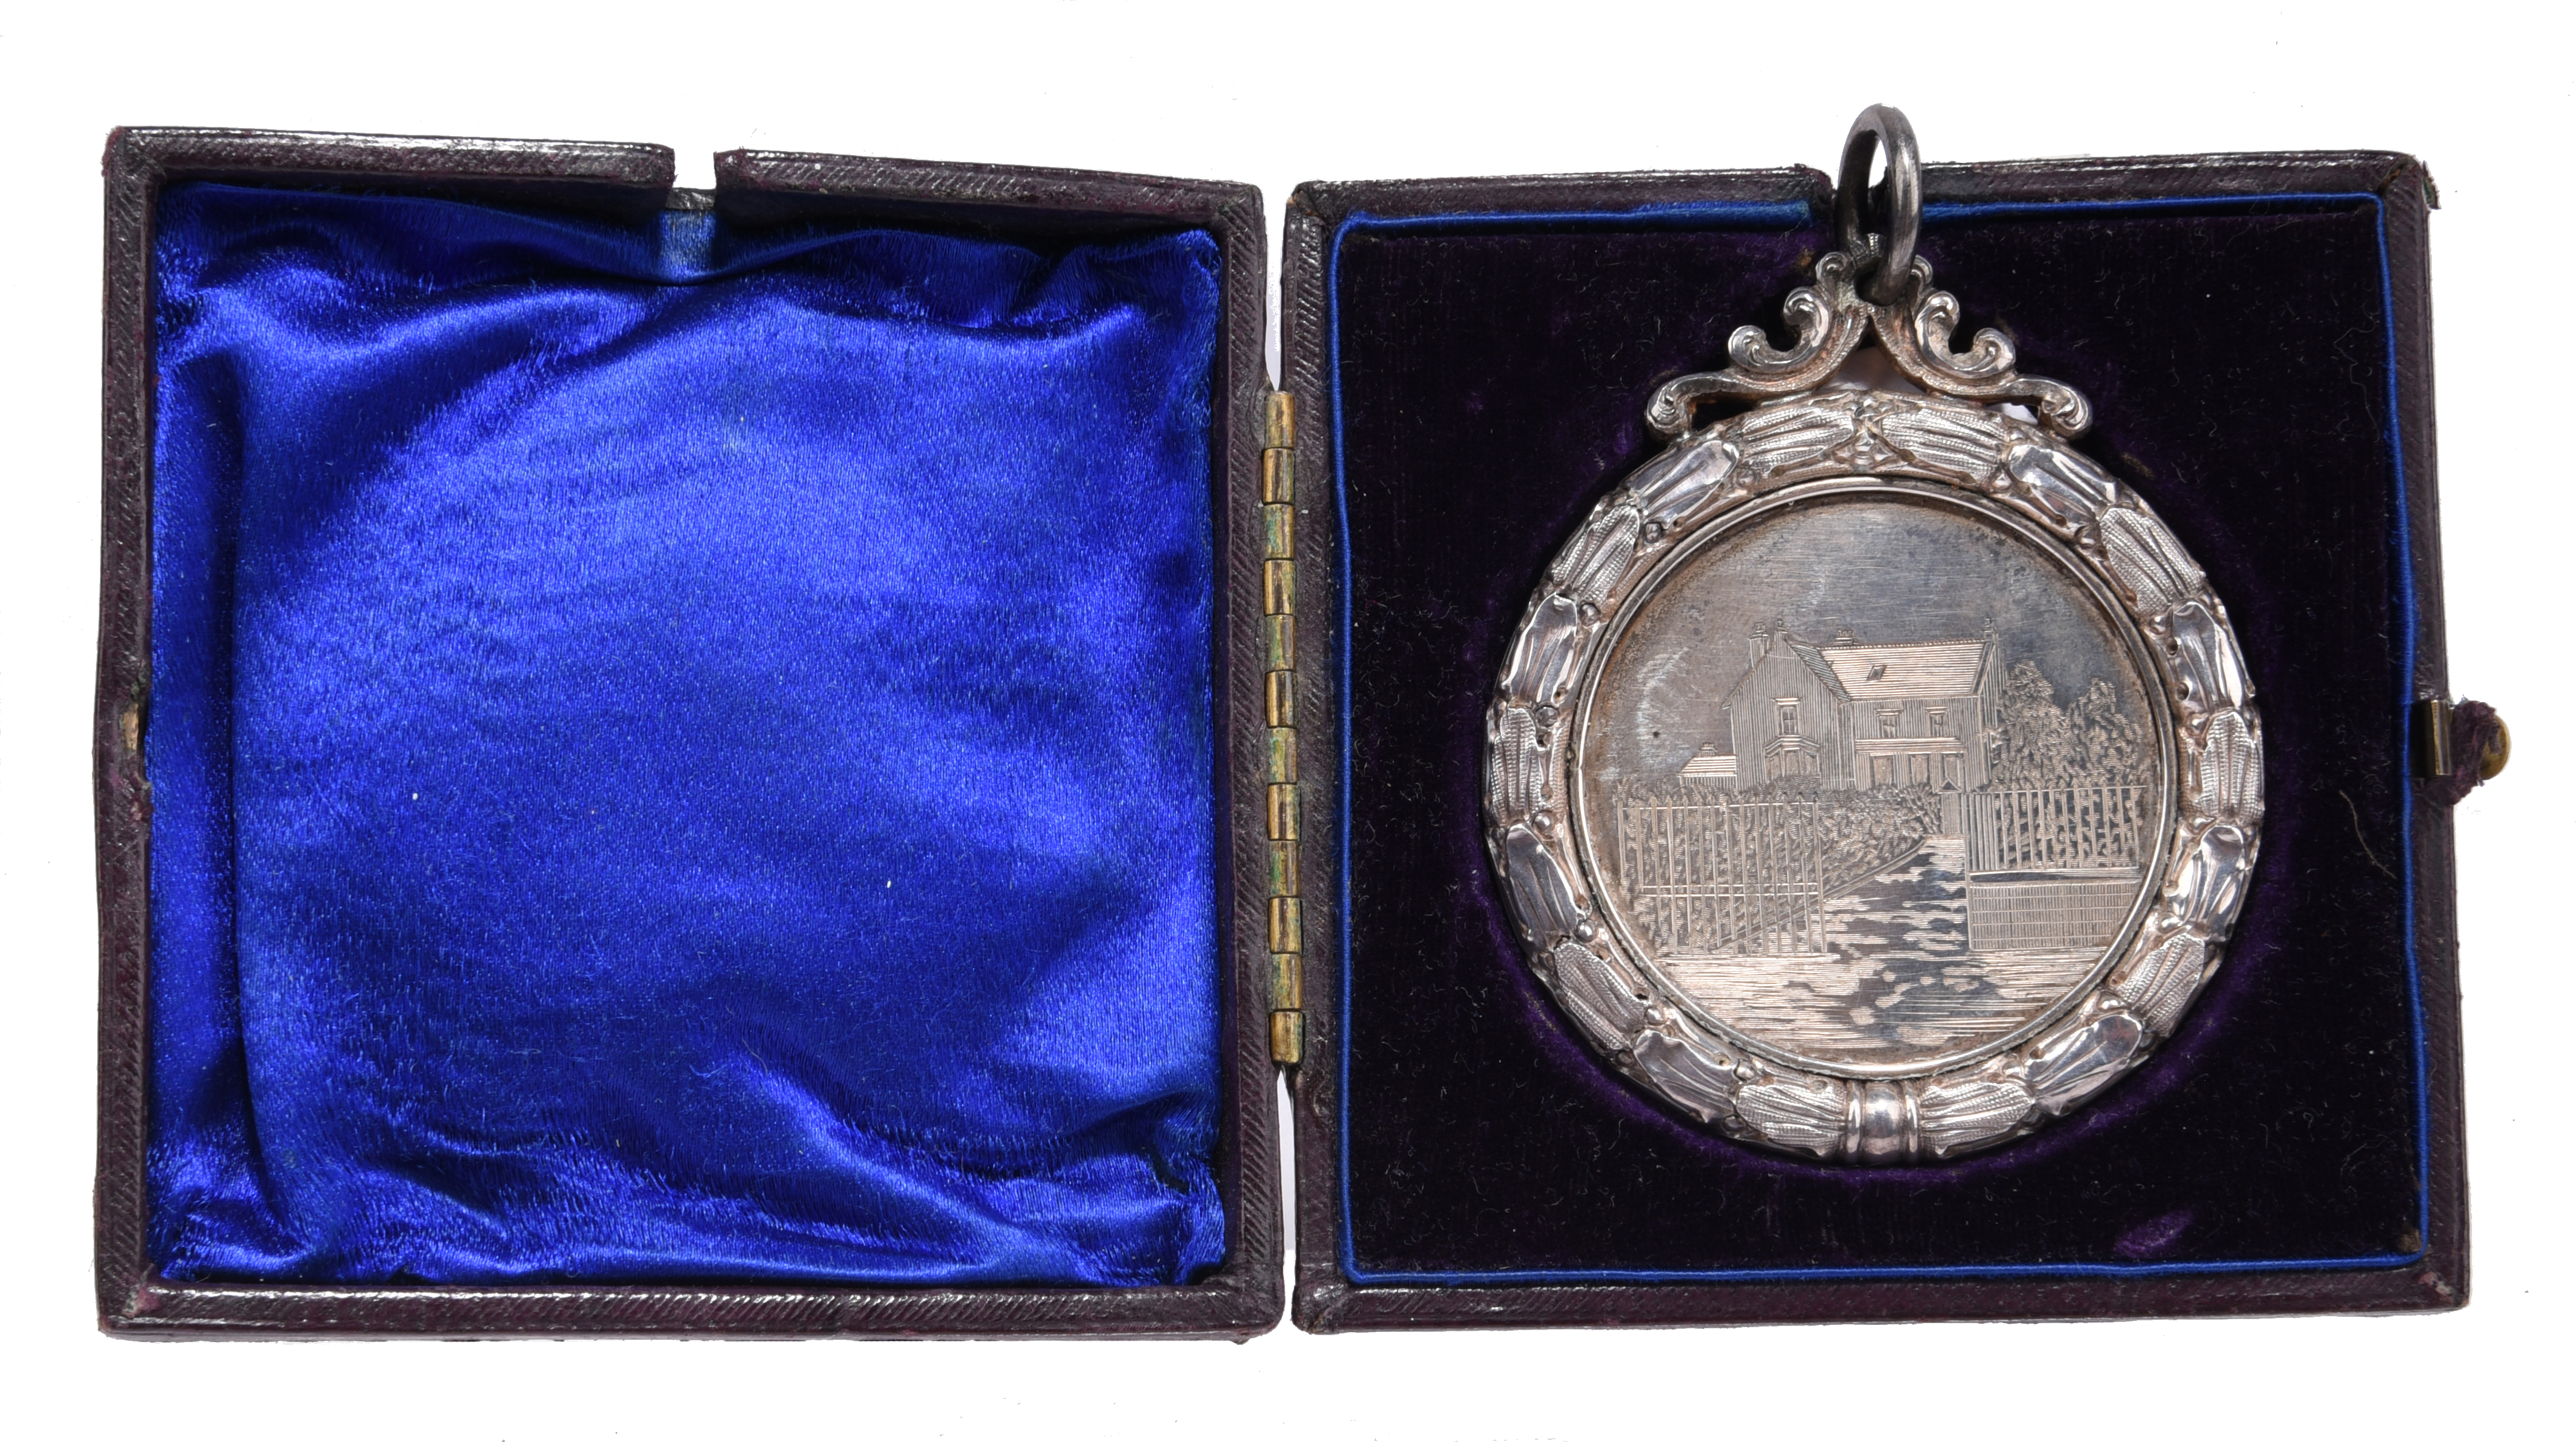 Scotland: Brechin High School 1888-9: an engraved silver prize medal, 58mm, view of the school, rev. - Image 3 of 3